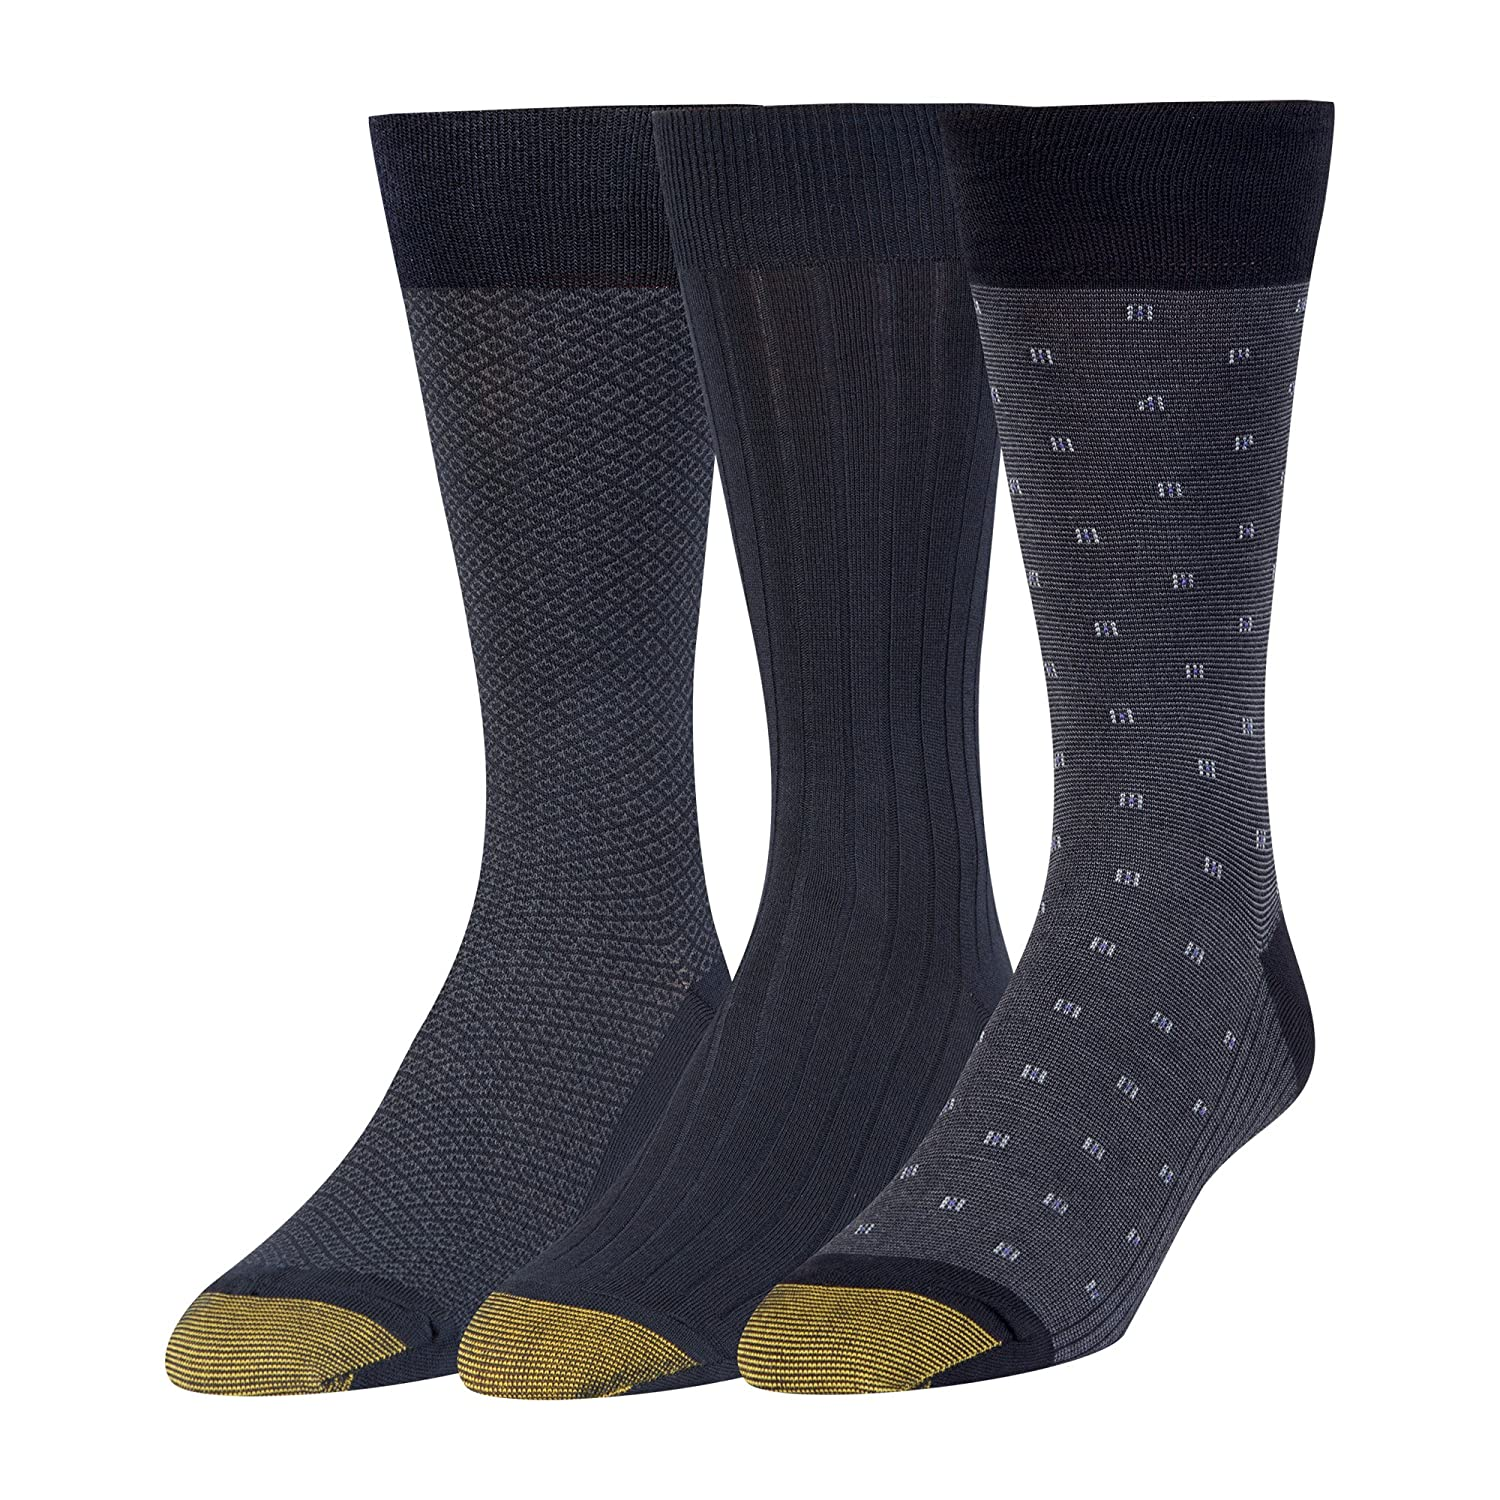 Gold Toe Men's Dress Crew Socks, 3 Pairs